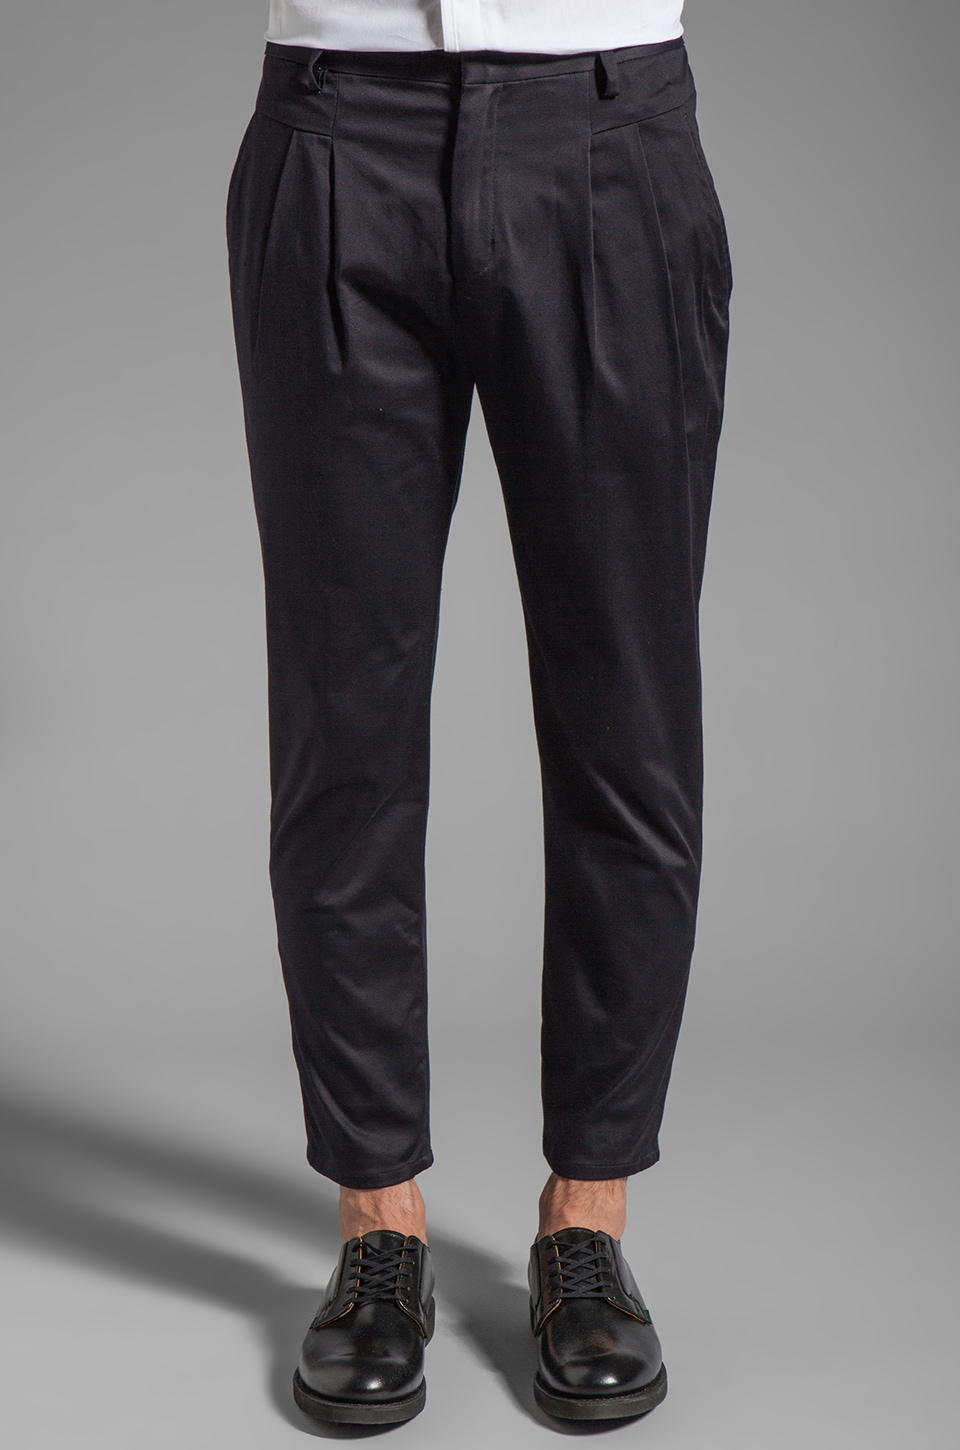 Kai-aakmann Pleated Pant in Navy